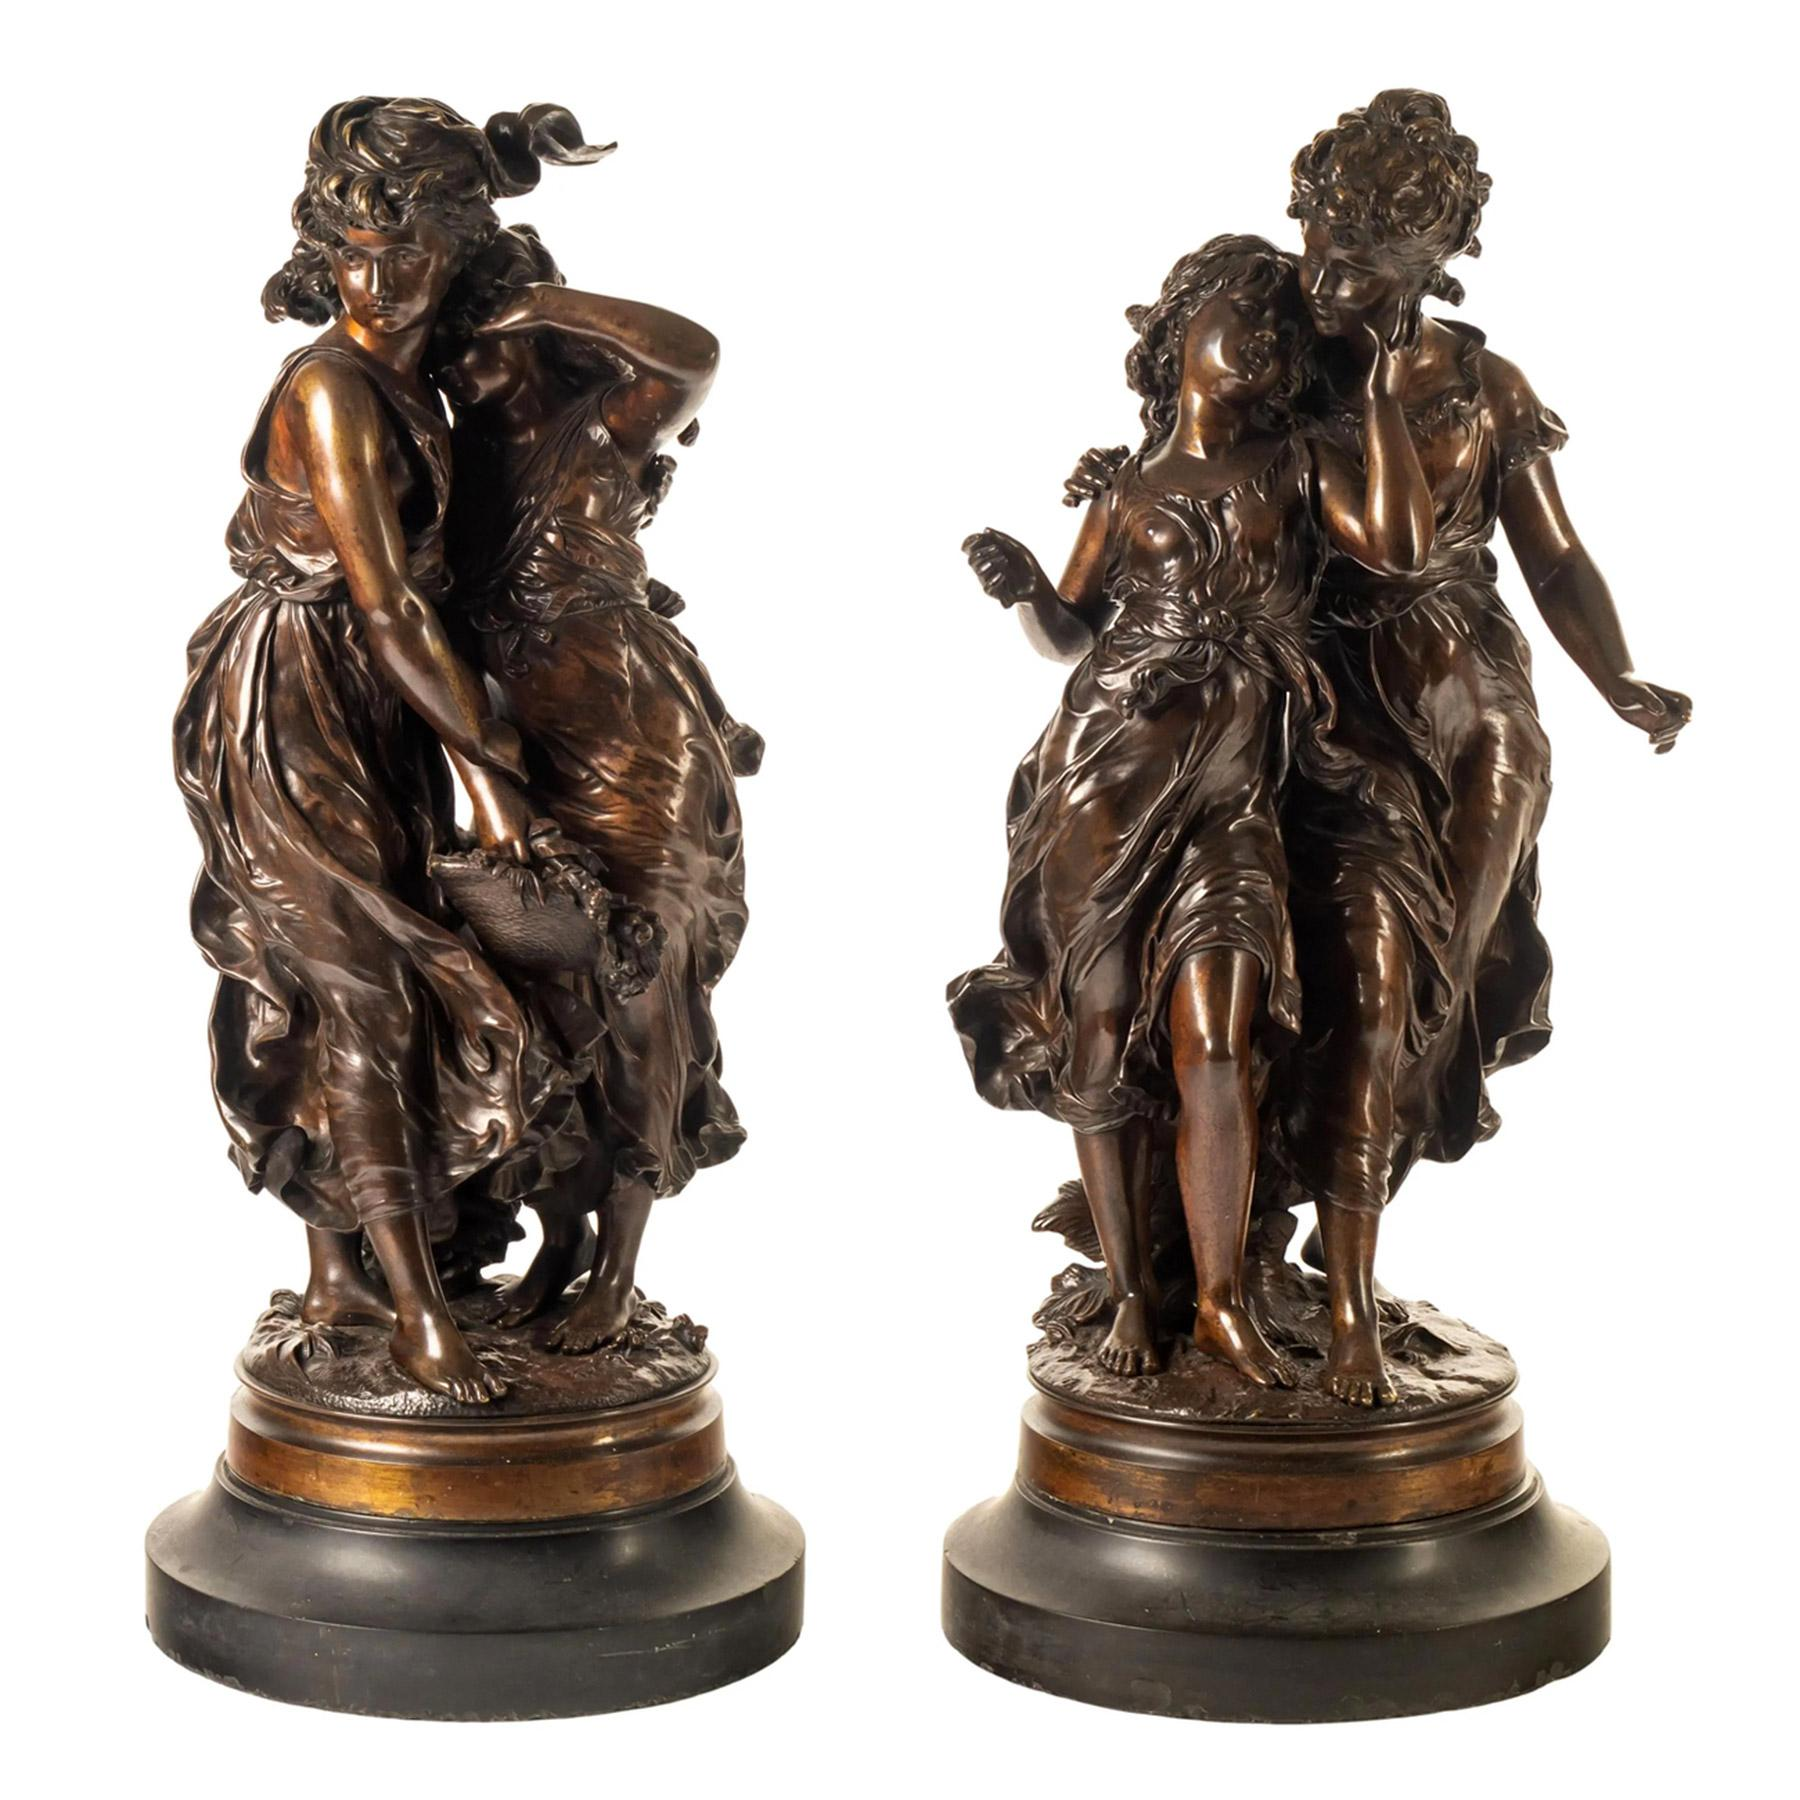 Fine Pair of Patinated Bronze Sculptures by Hippolyte Moreau